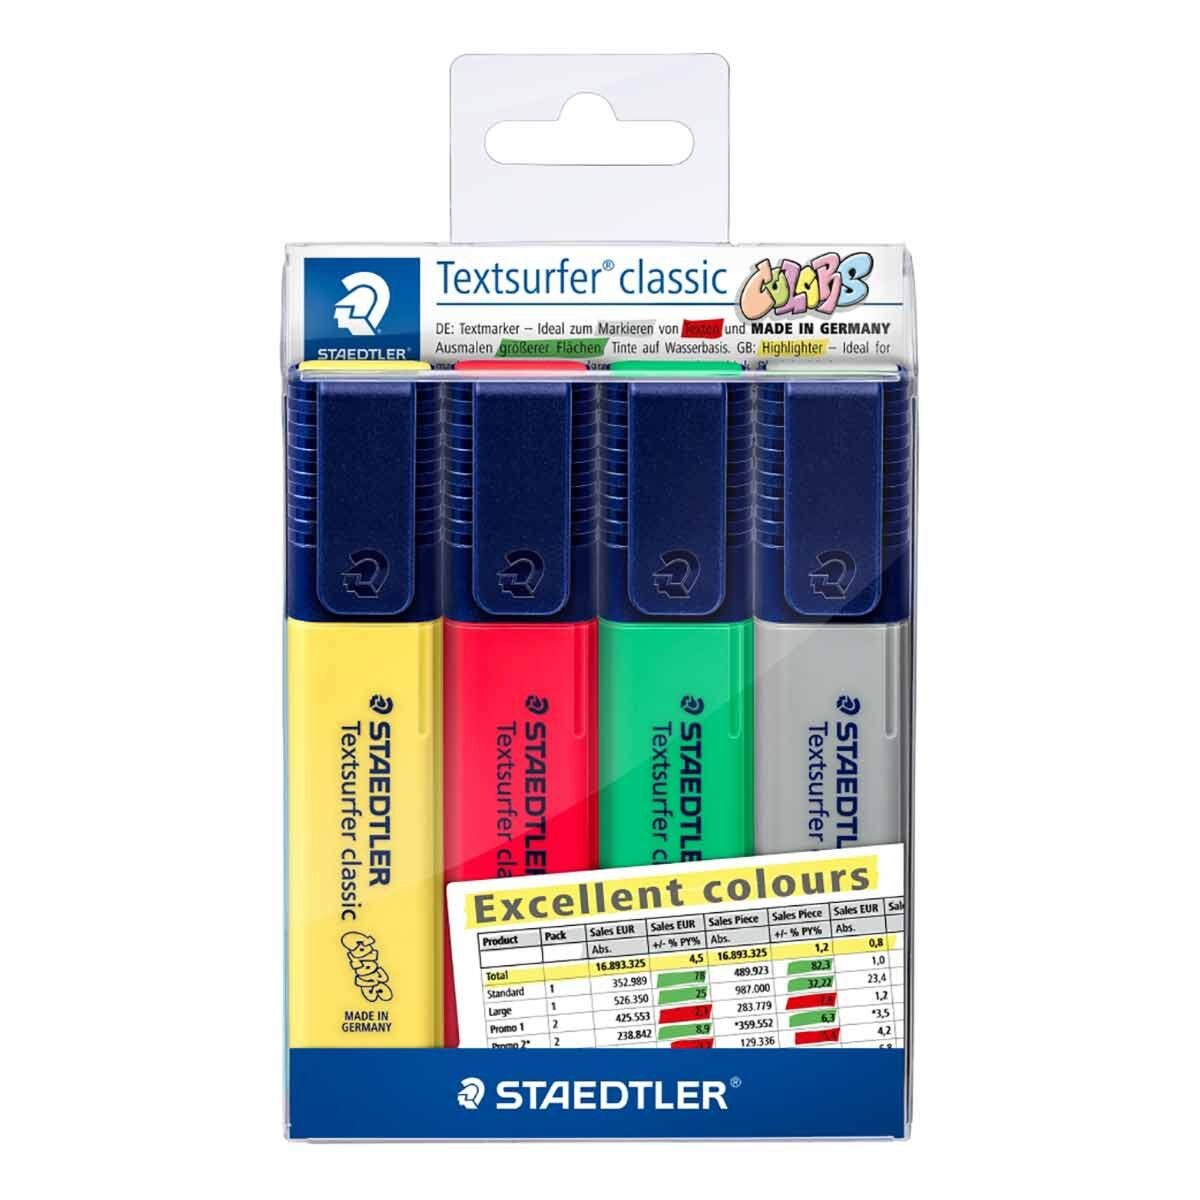 Staedtler Textsurfer Classic Highlighters Pack of 4 Assorted